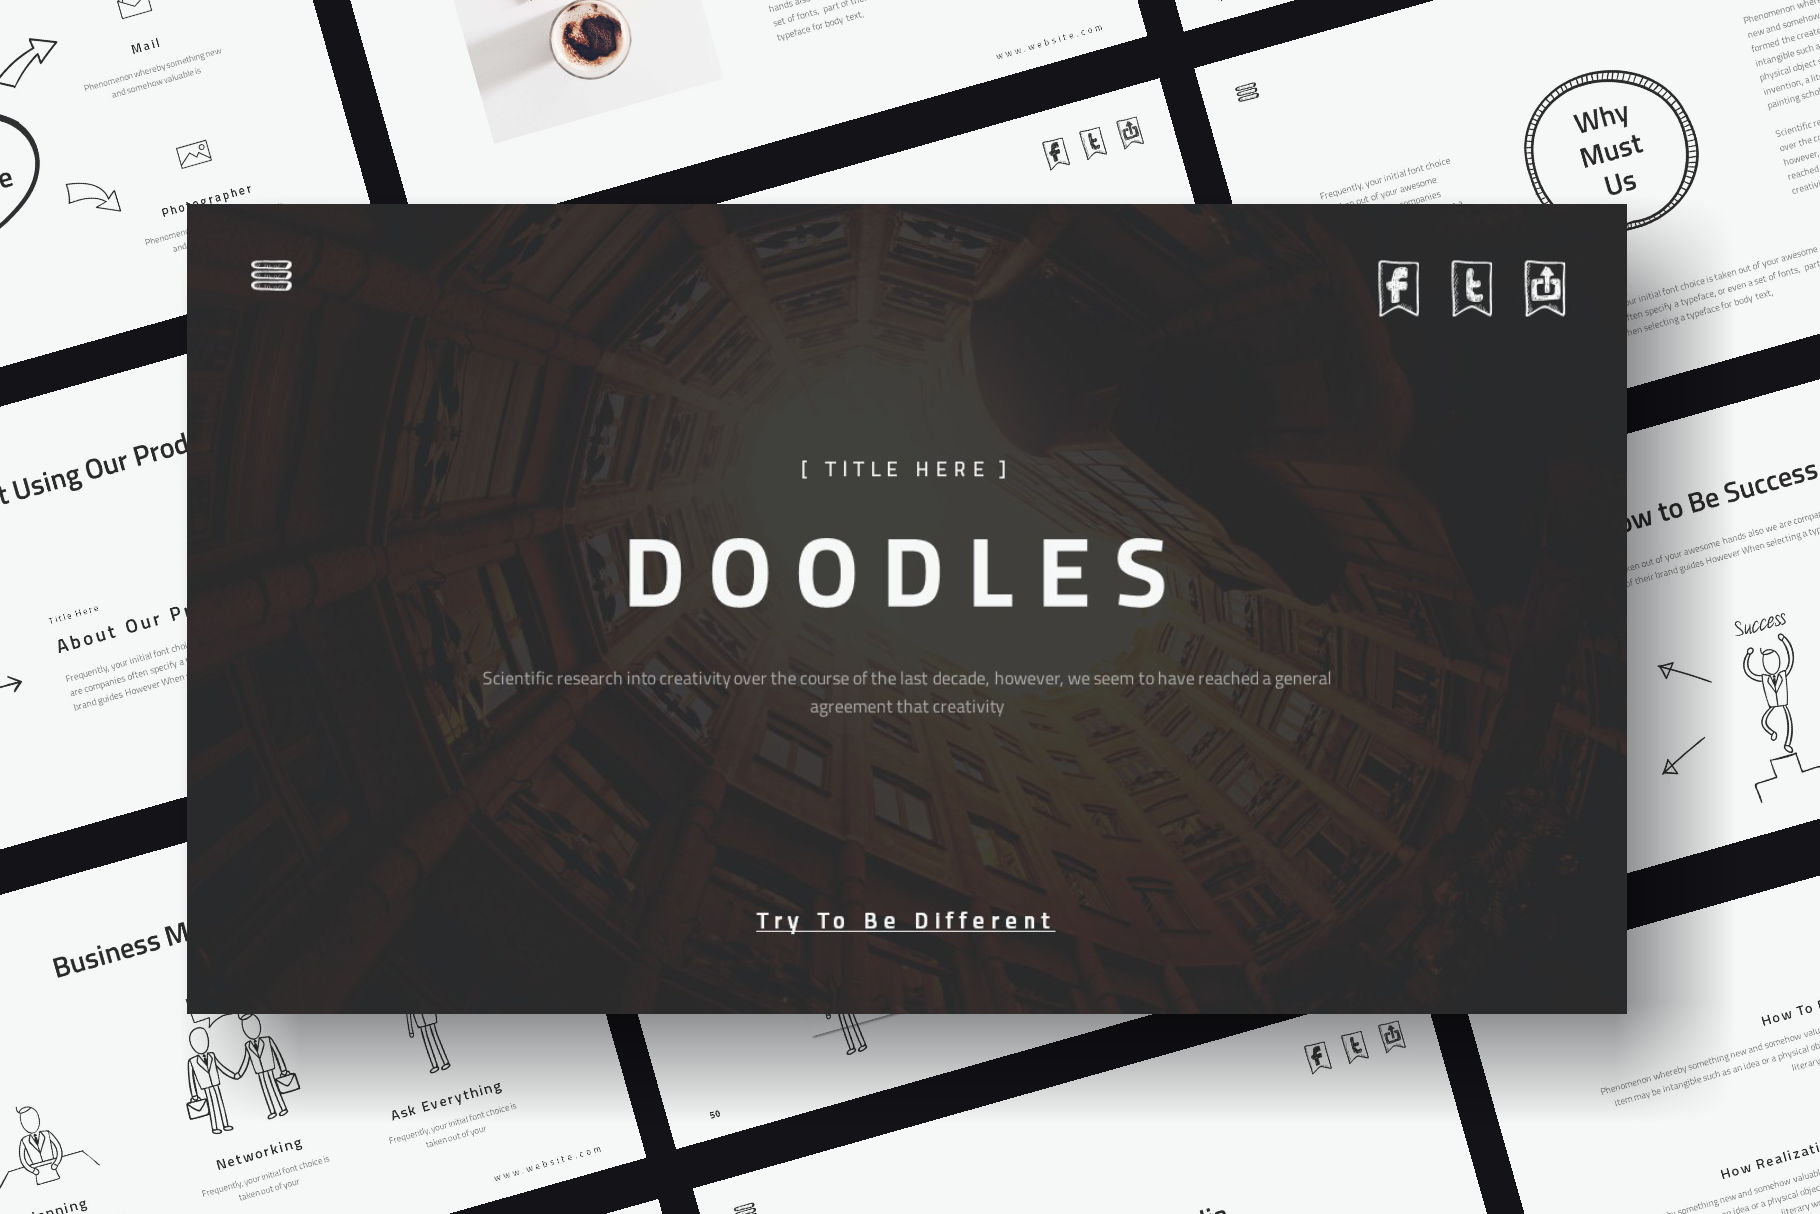 Doodles PowerPoint Template example image 1